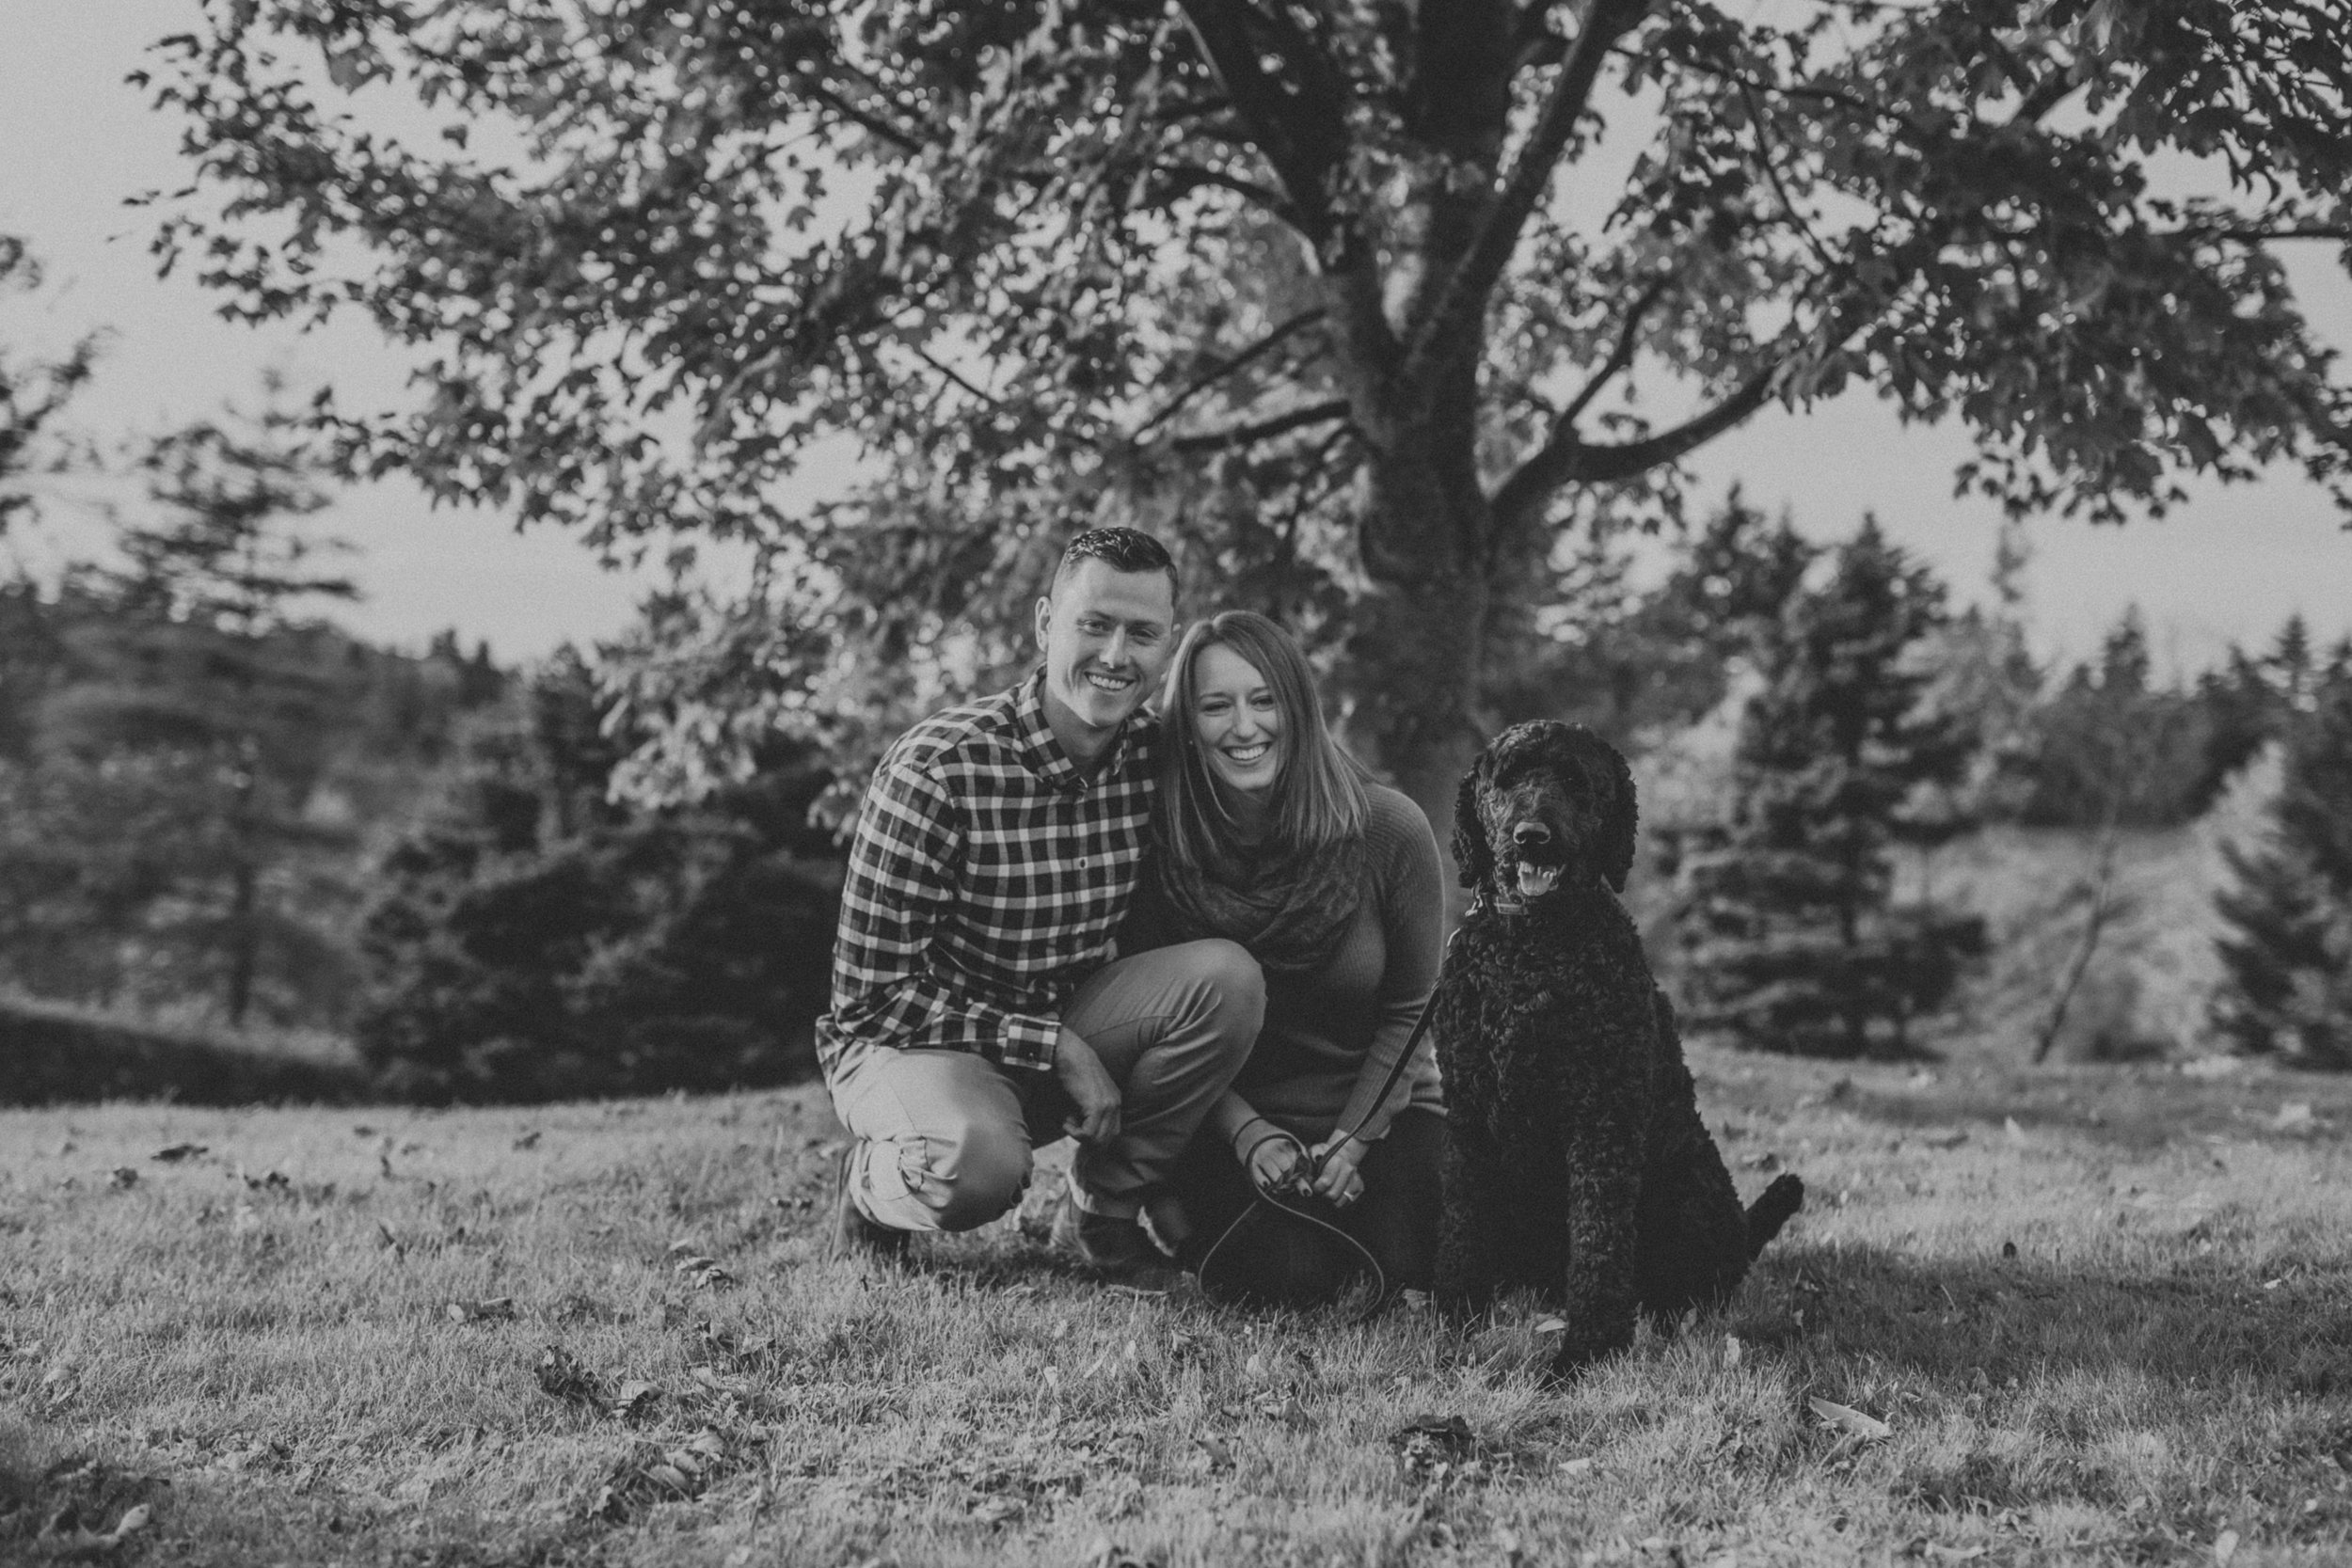 Pet friendly engagement session